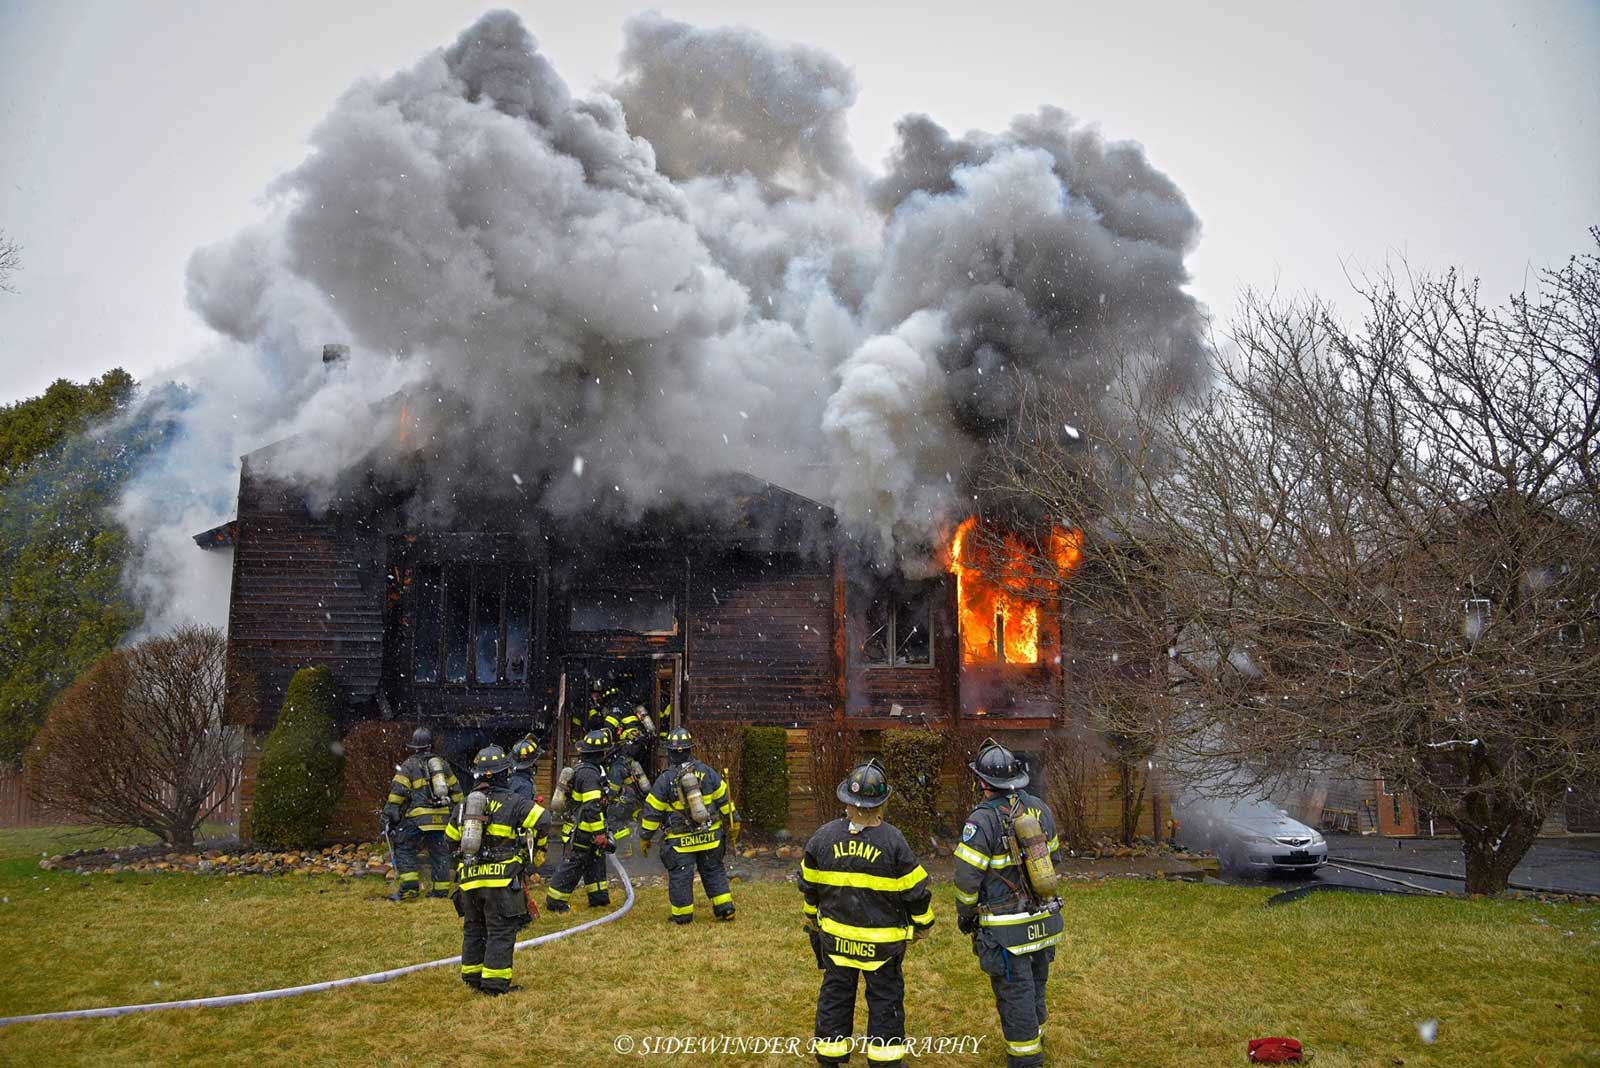 Firefighters on scene at a raging house fire in Albany